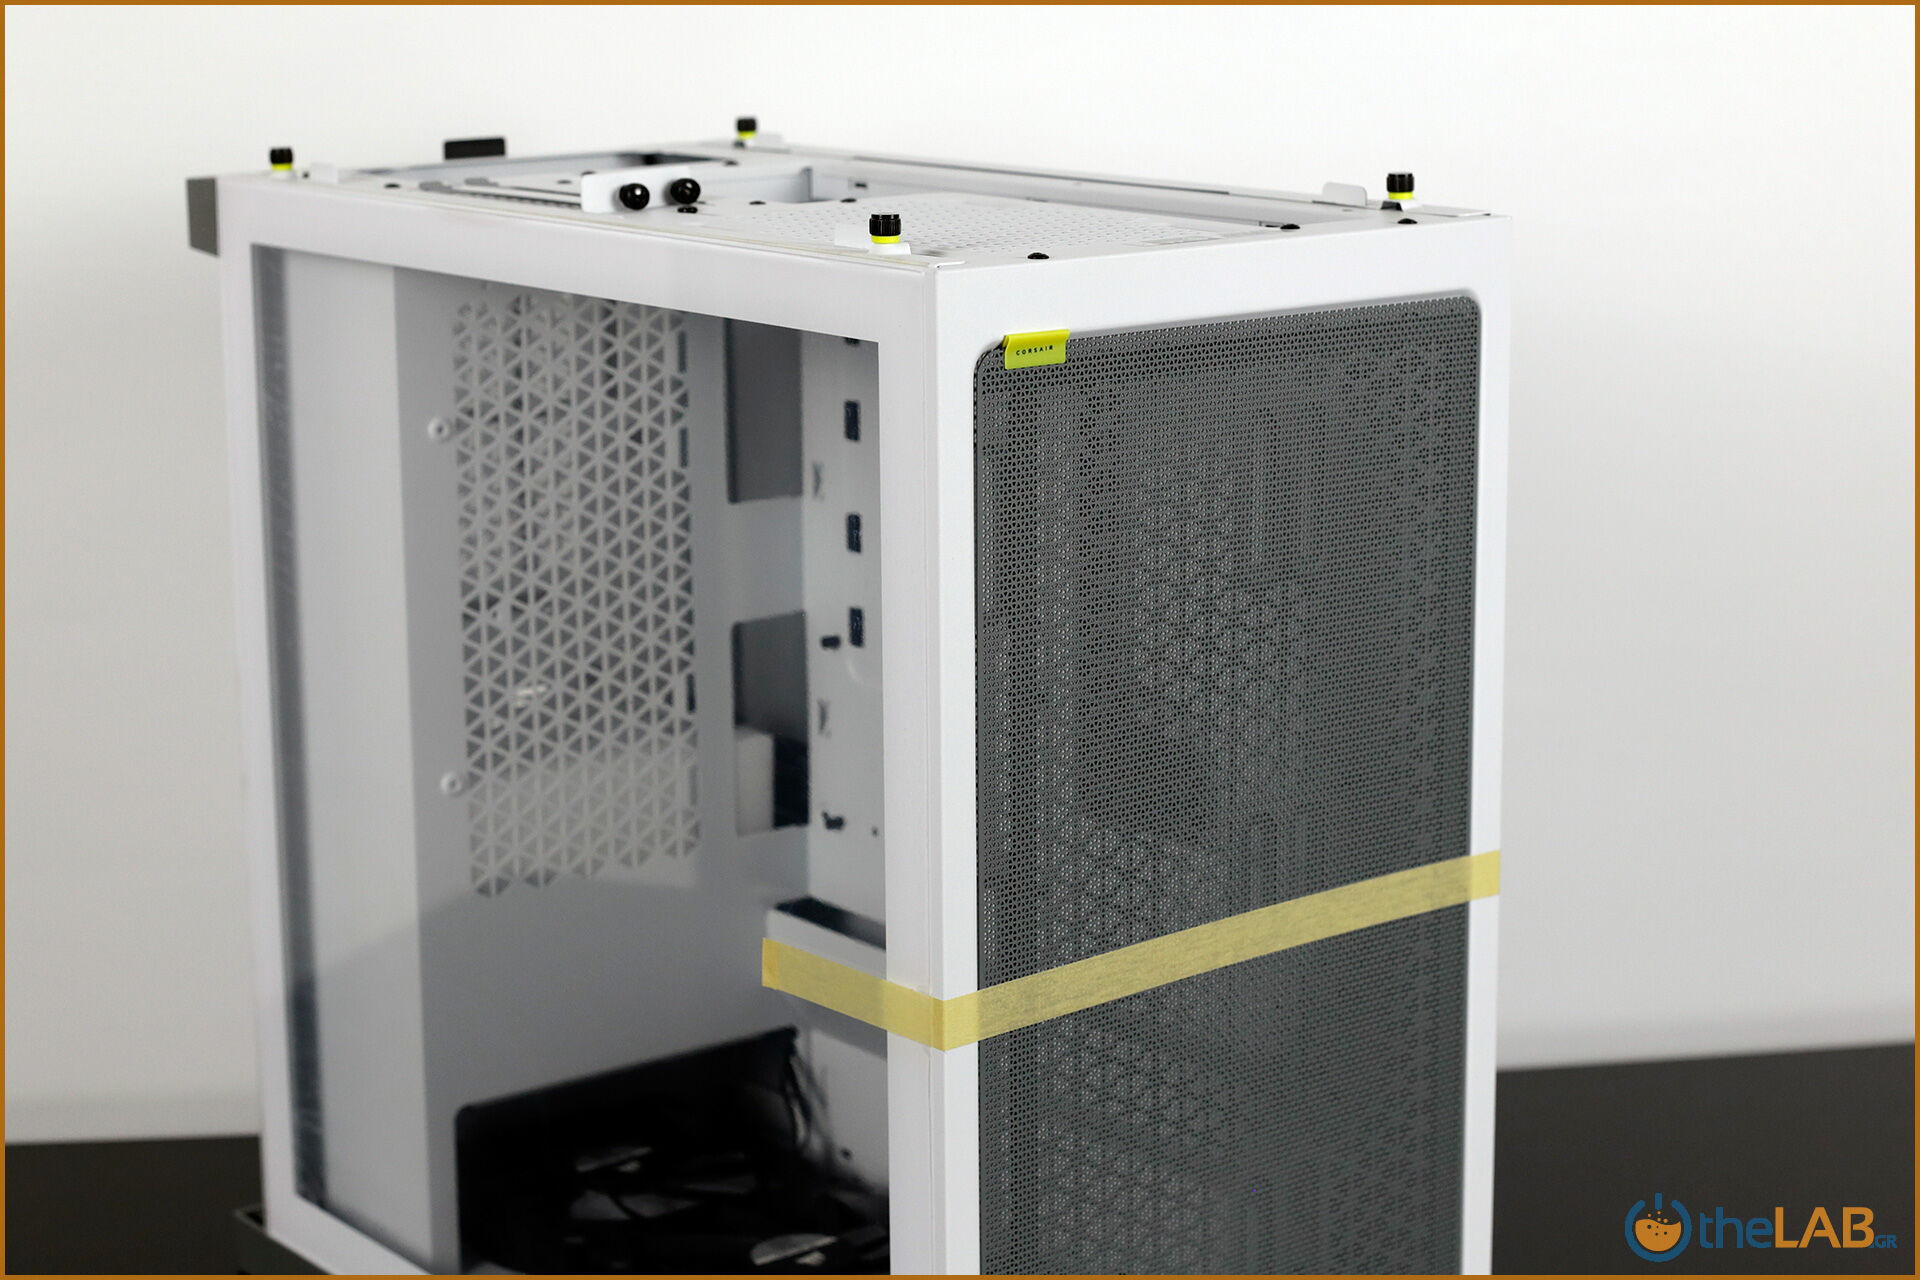 Corsair_icue_4000x_rgb_case_smart_exterior_interior_mid_tower_gaming_case_smart_review_image547.jpg